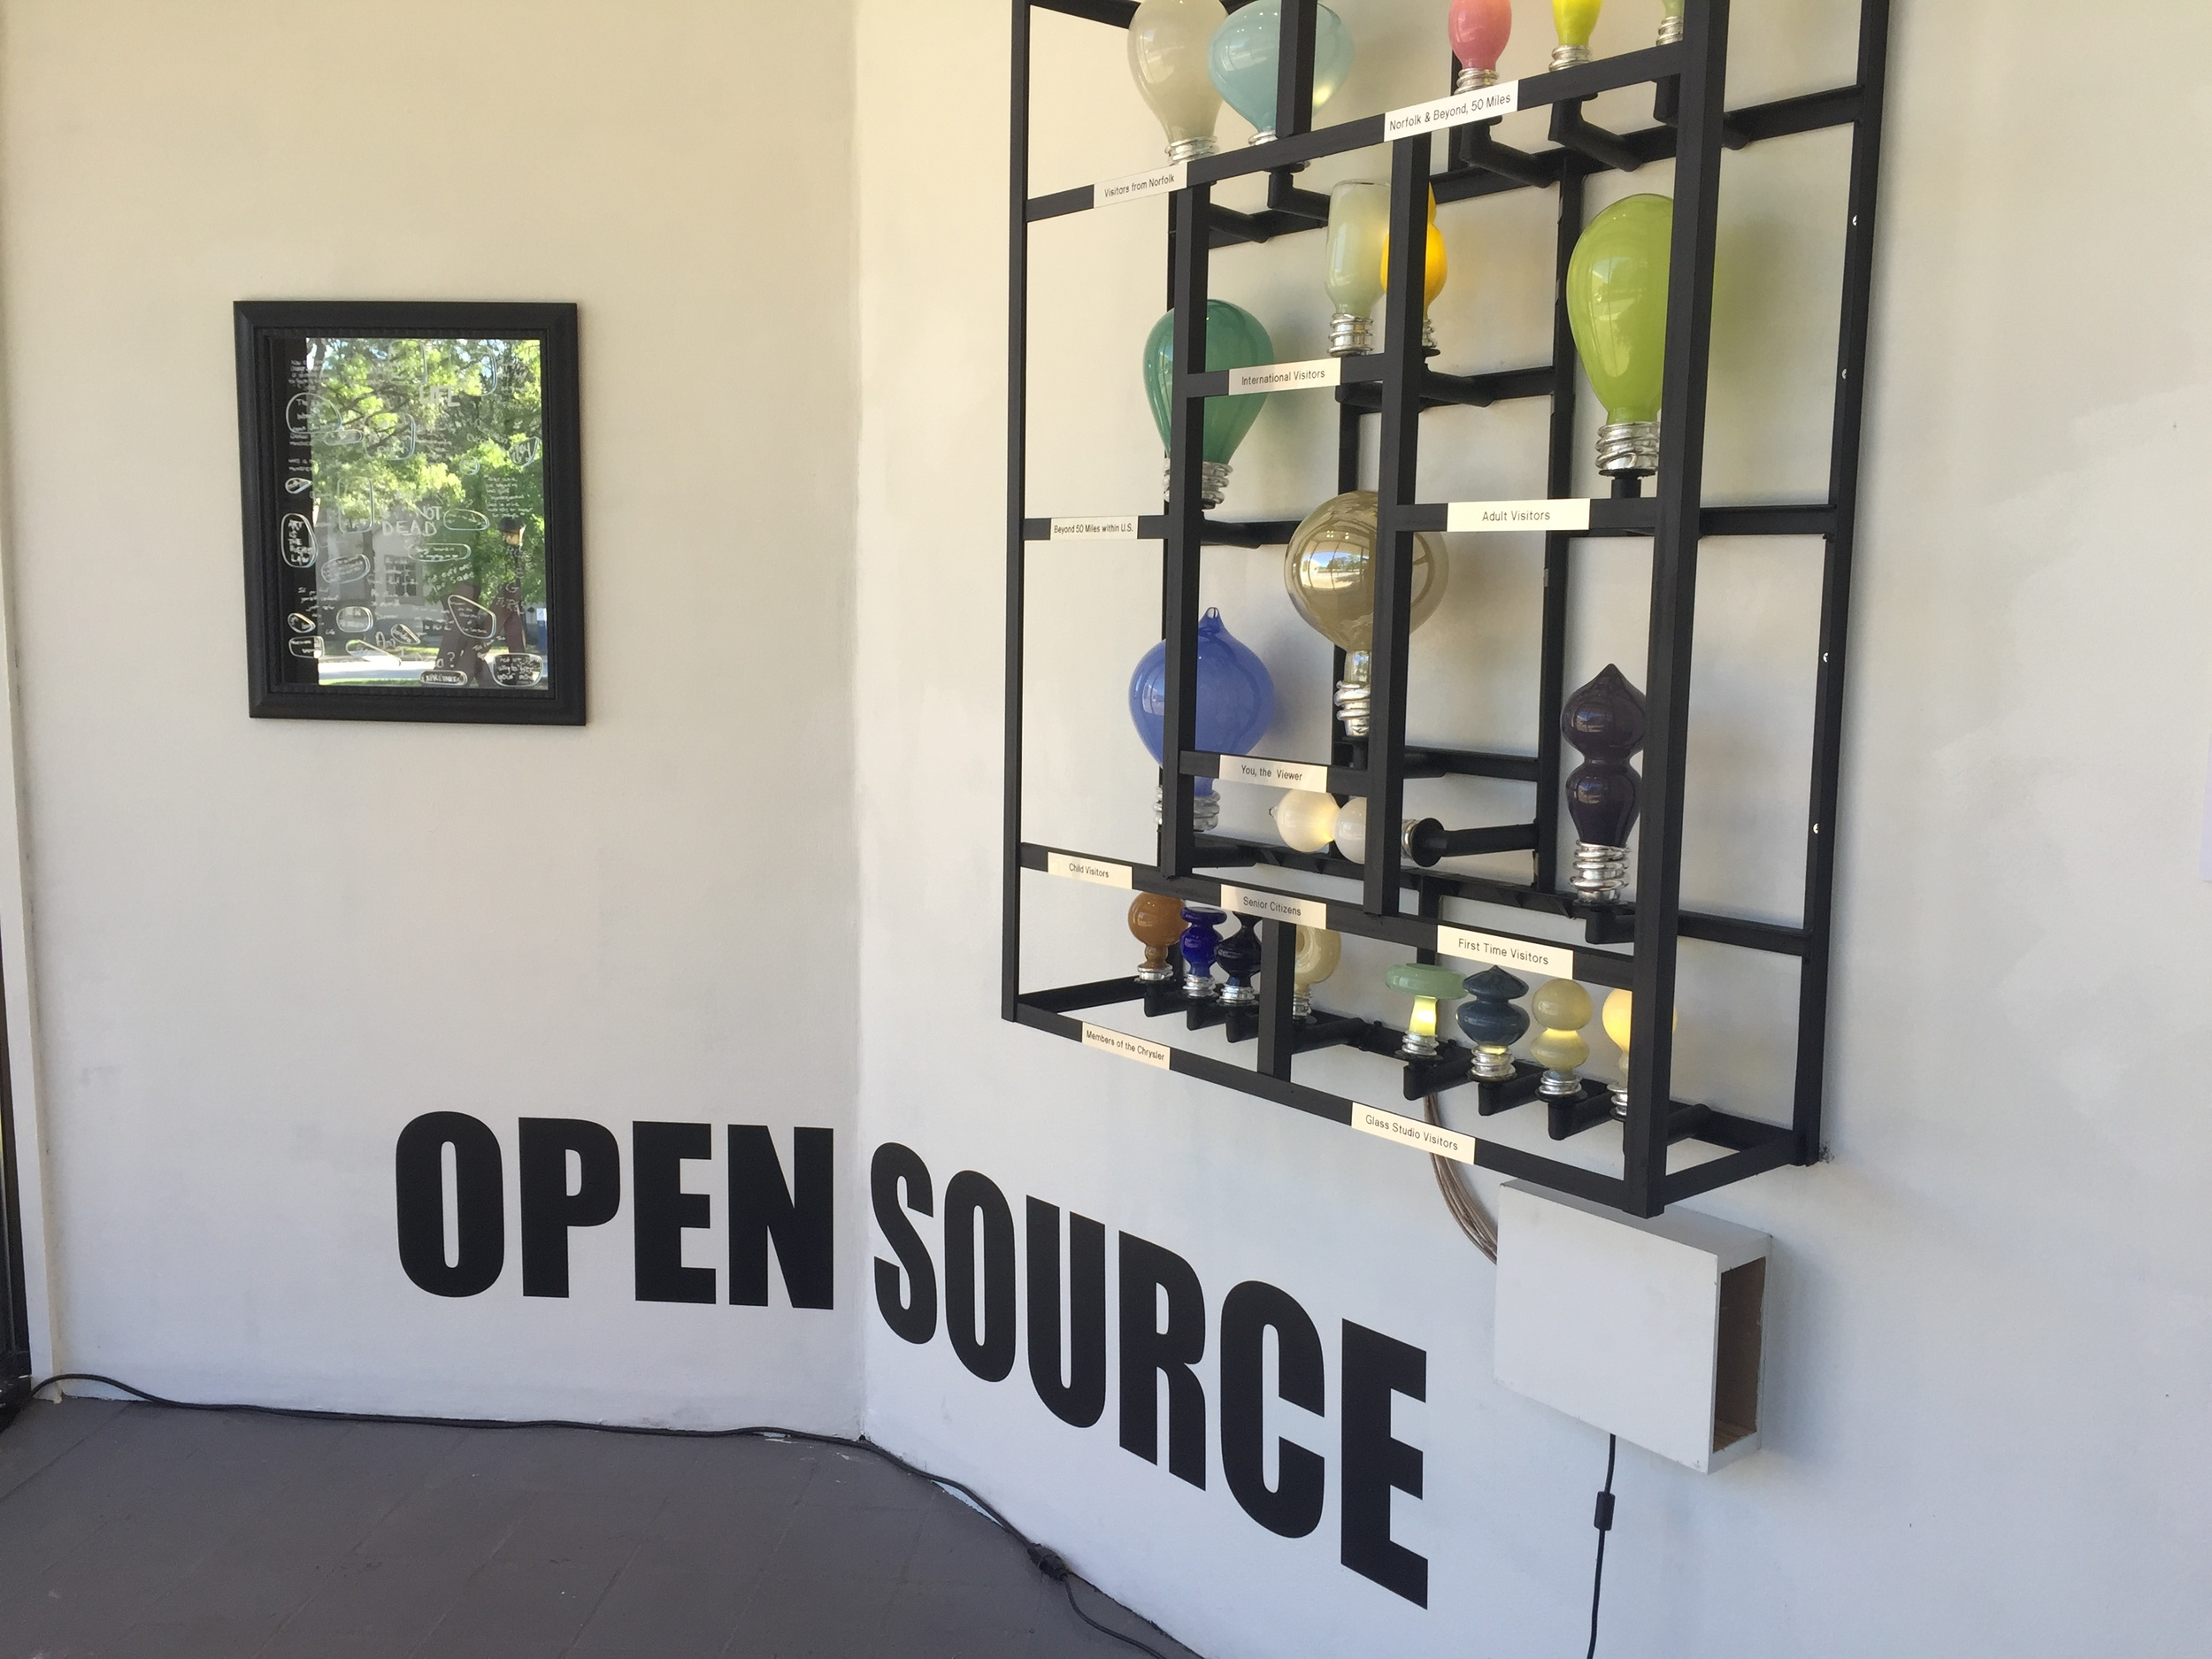 Open Source,   2016  Mouth blown glass, visitor responses  Installation view